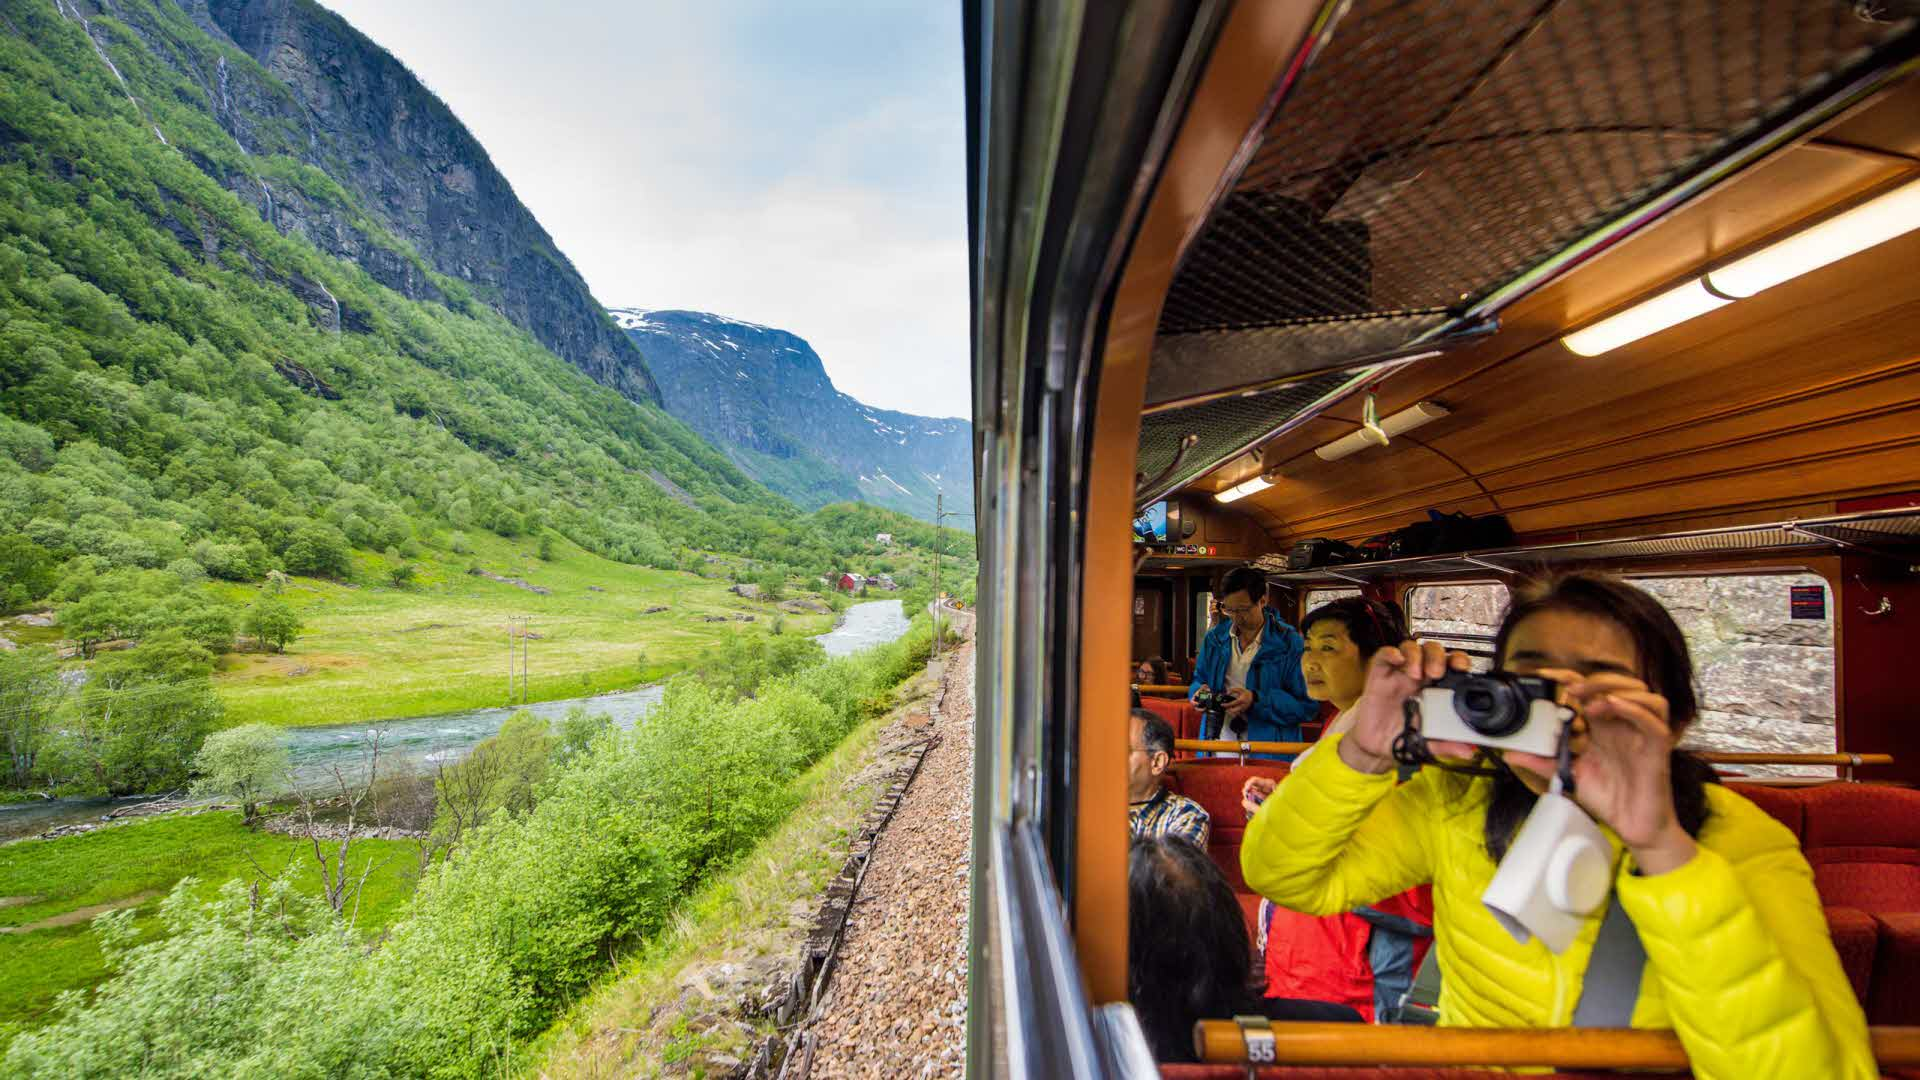 Summer on the Flam Railway